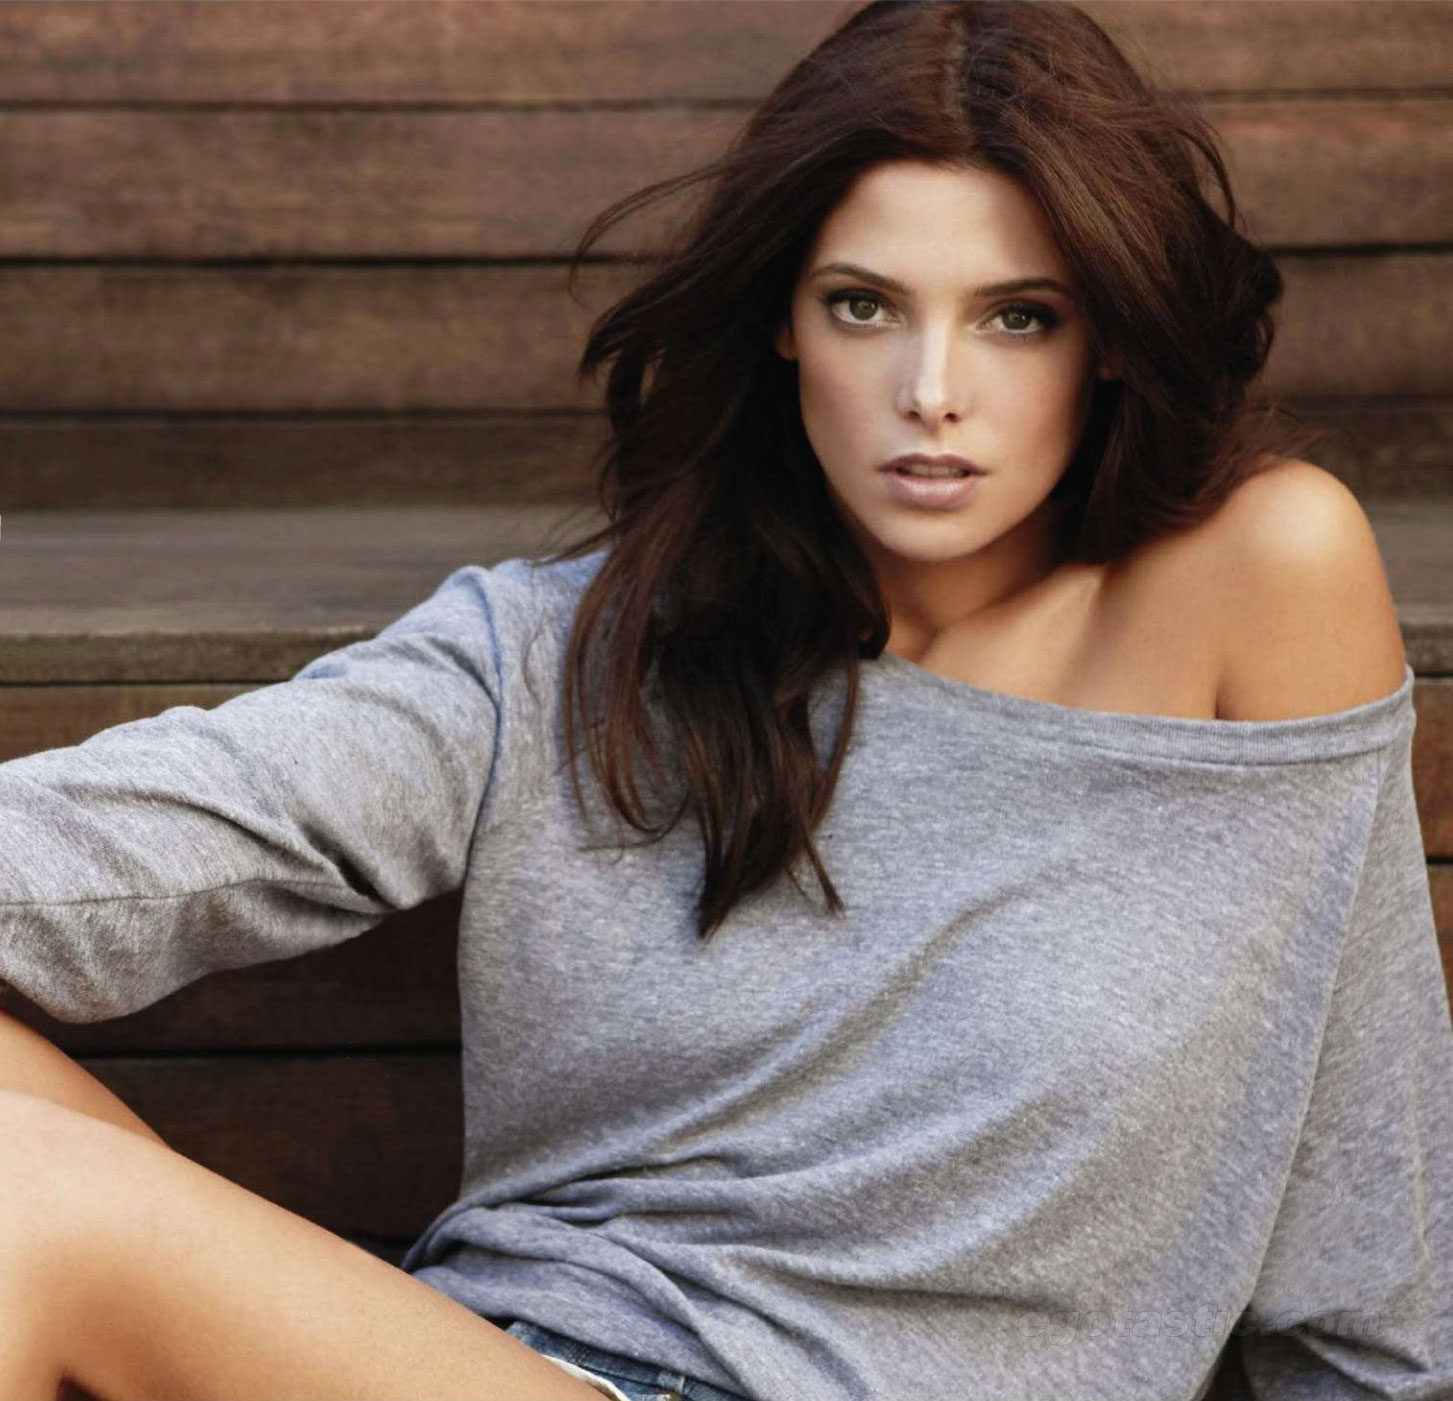 http://1.bp.blogspot.com/-fRJ-Ma7bN7Y/Tc2gyA8zsfI/AAAAAAAABpk/Eh1ymL3H8Rc/s1600/0----ashley-greene-jan-cosmo-03.jpg